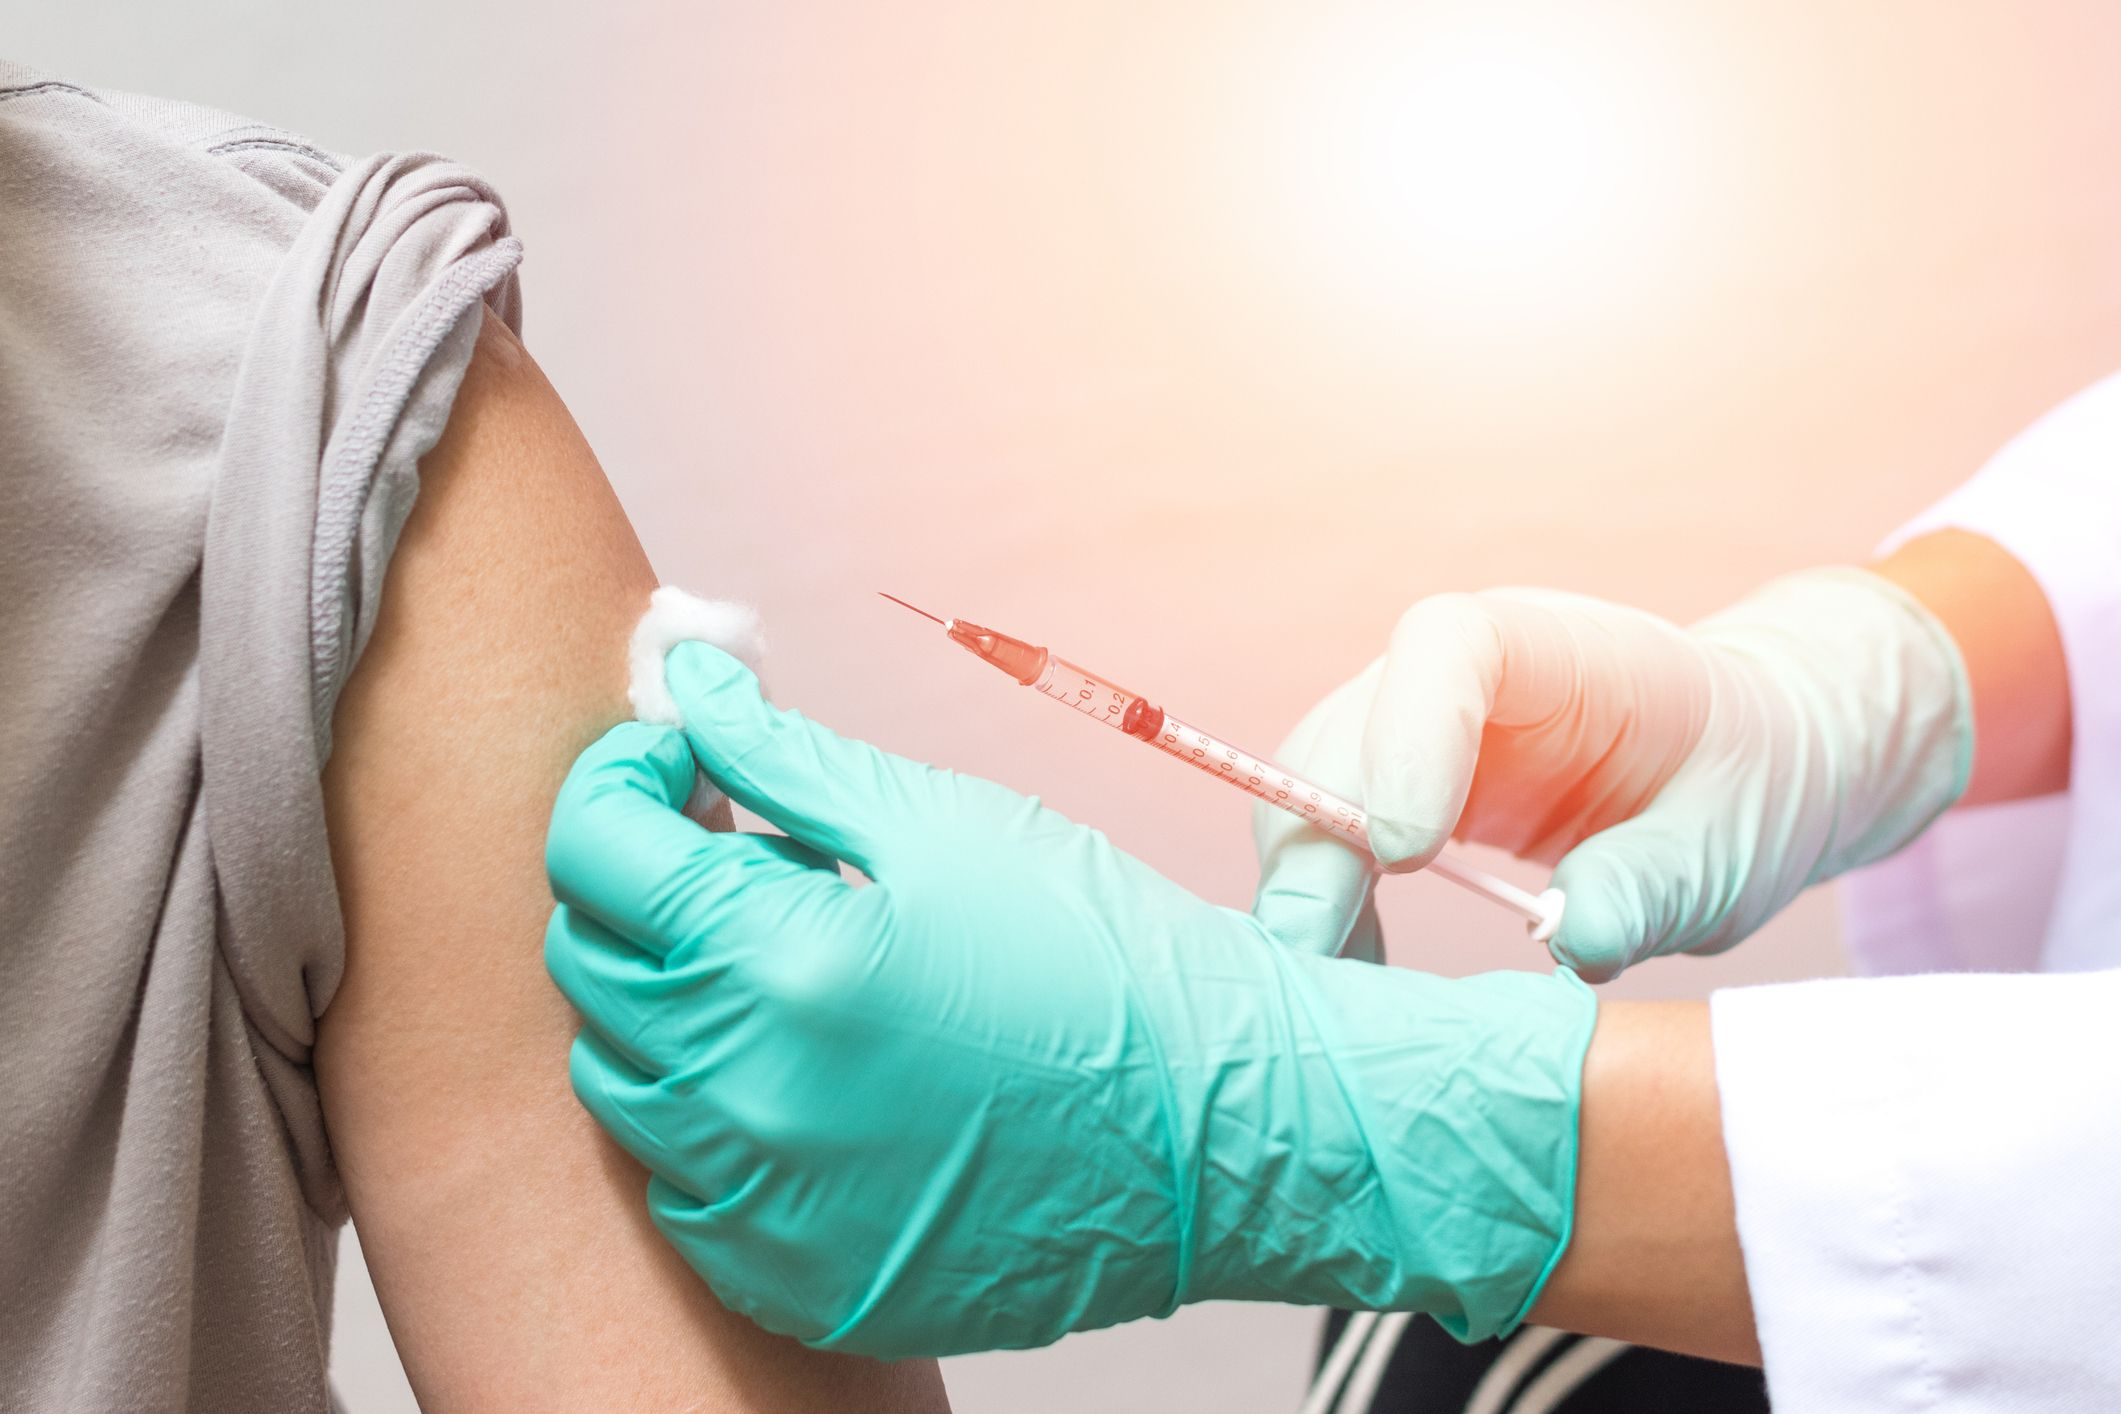 Flu Shot Facts - What Are the Side Effects of Getting a Flu Shot?